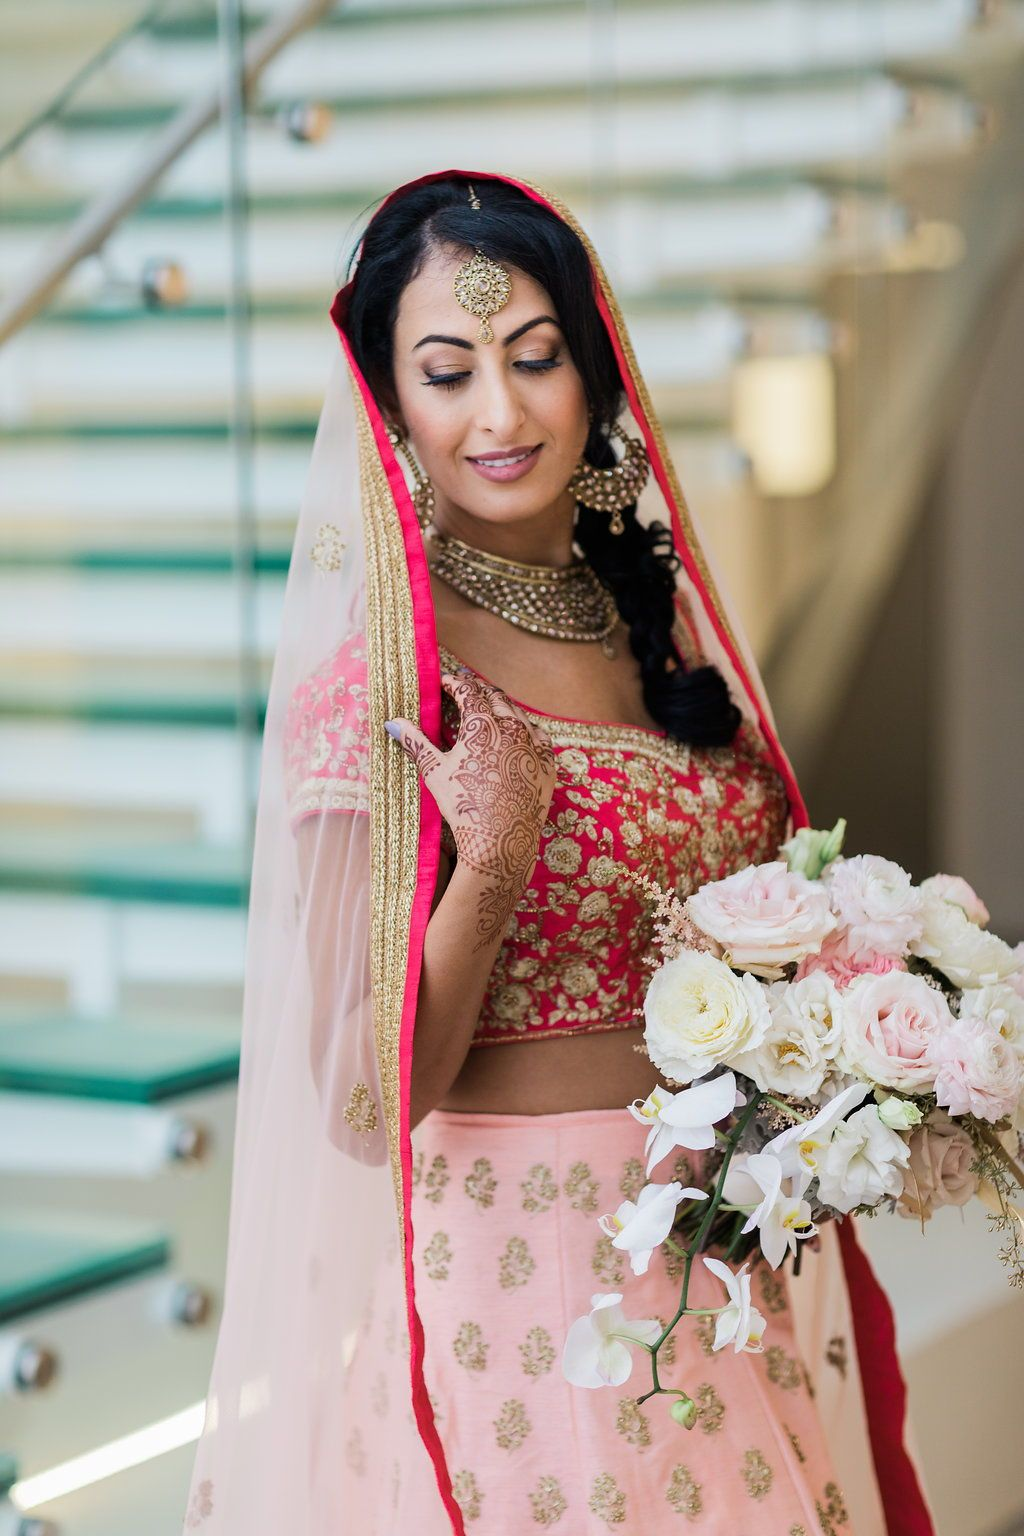 Nontraditional south asian wedding at chez event space in chicago